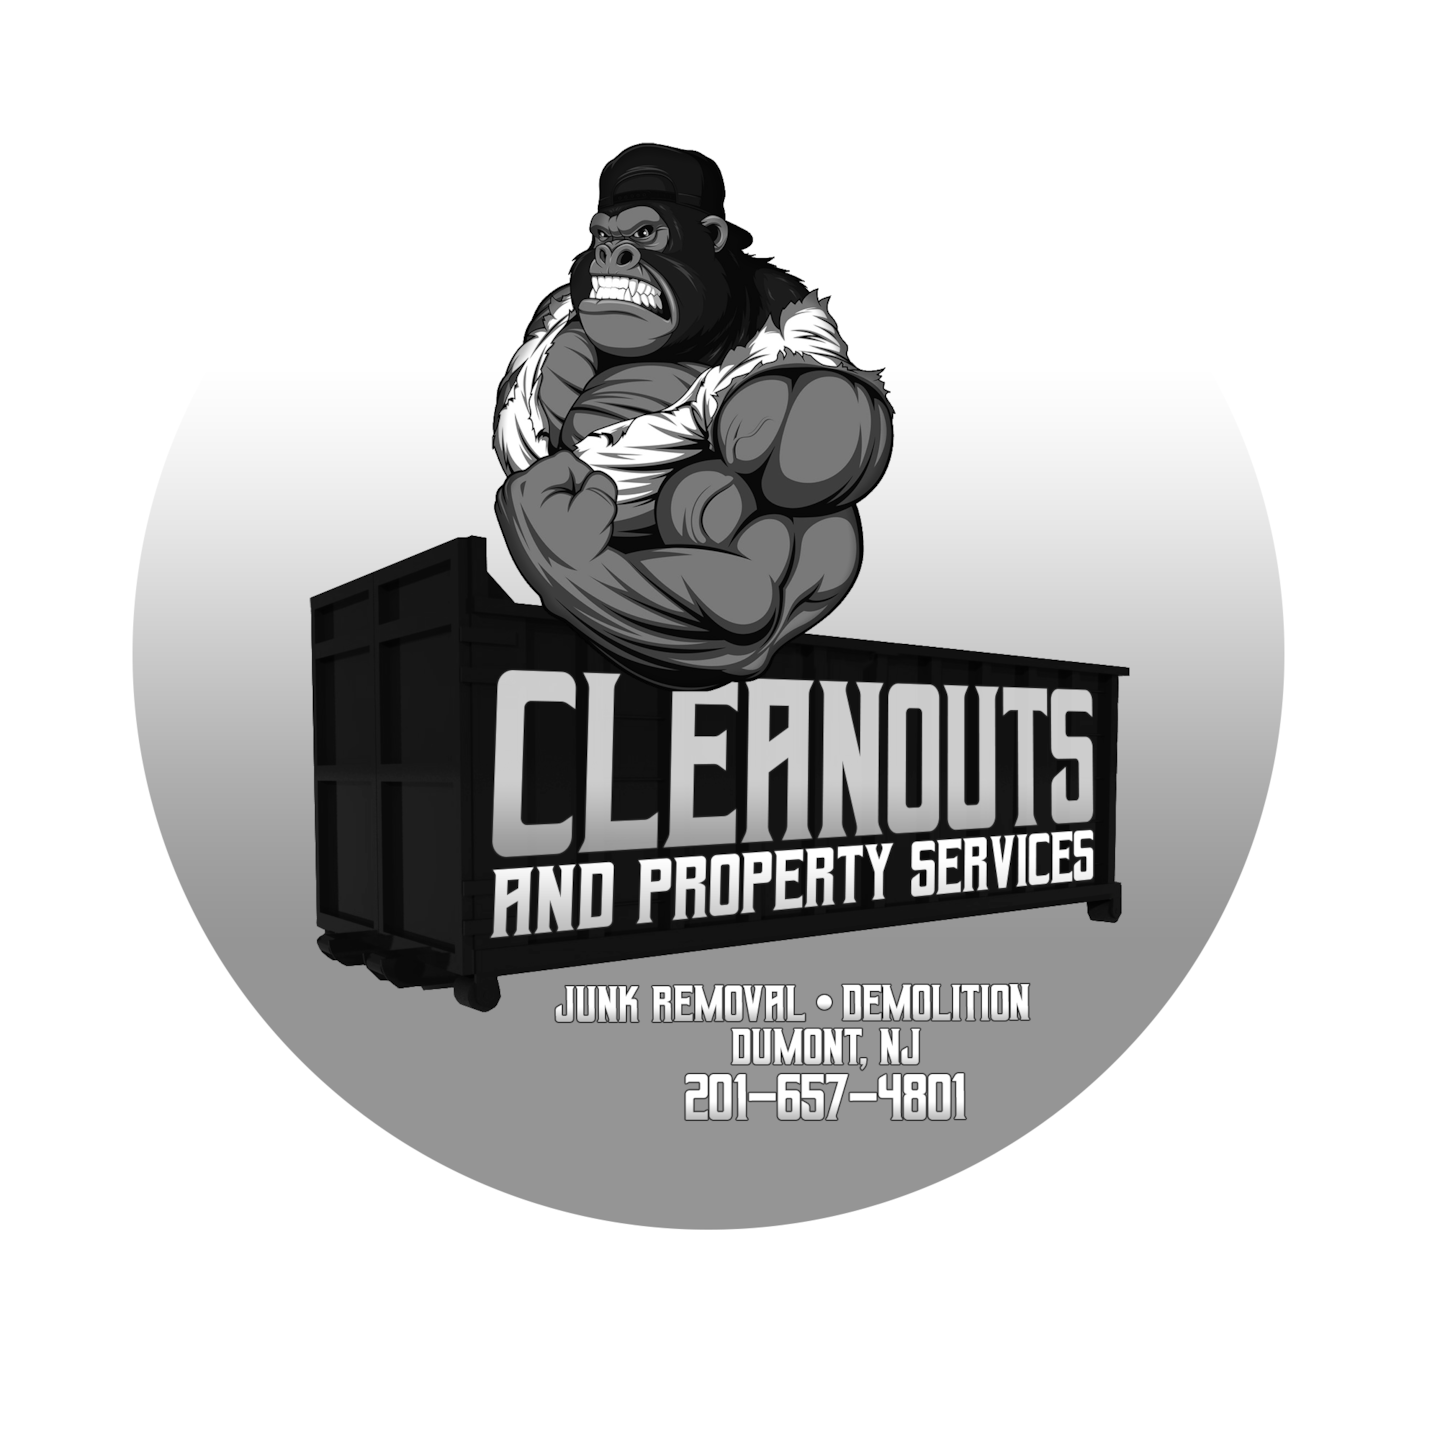 Cleanouts and Property Services